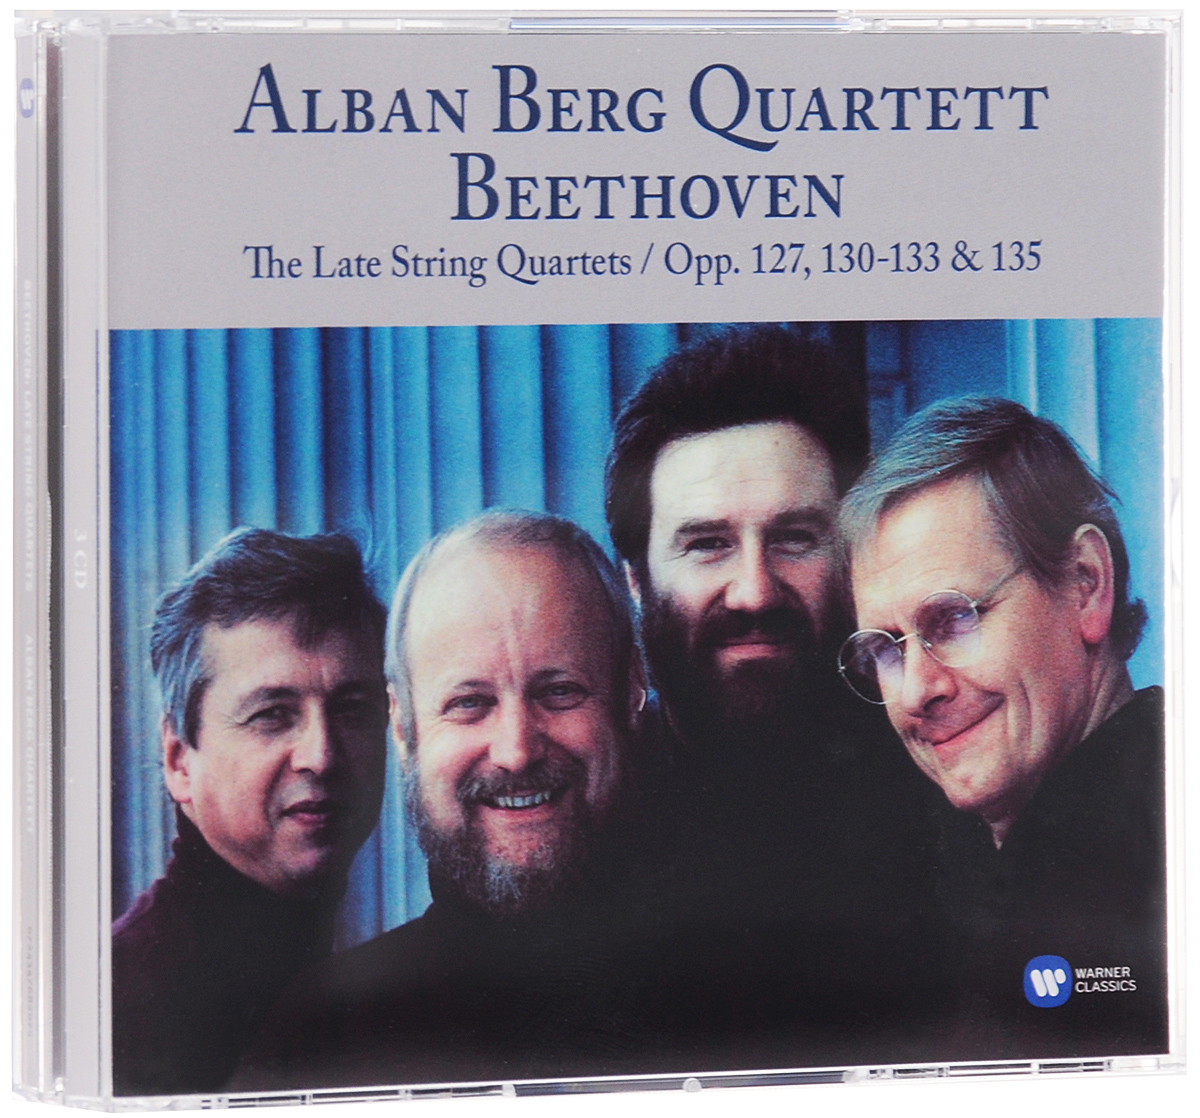 Alban Berg Quartet,Гюнтер Пичлер,Герхард Шульц,Томас Какуска,Валентин Эрбен Alban Berg Quartett. Beethoven. The Late String Quartets. Opp. 127, 130, 131, 132, 133 & 135 (3 CD) novak quartet franz schubert string quartet in g major op 161 lp